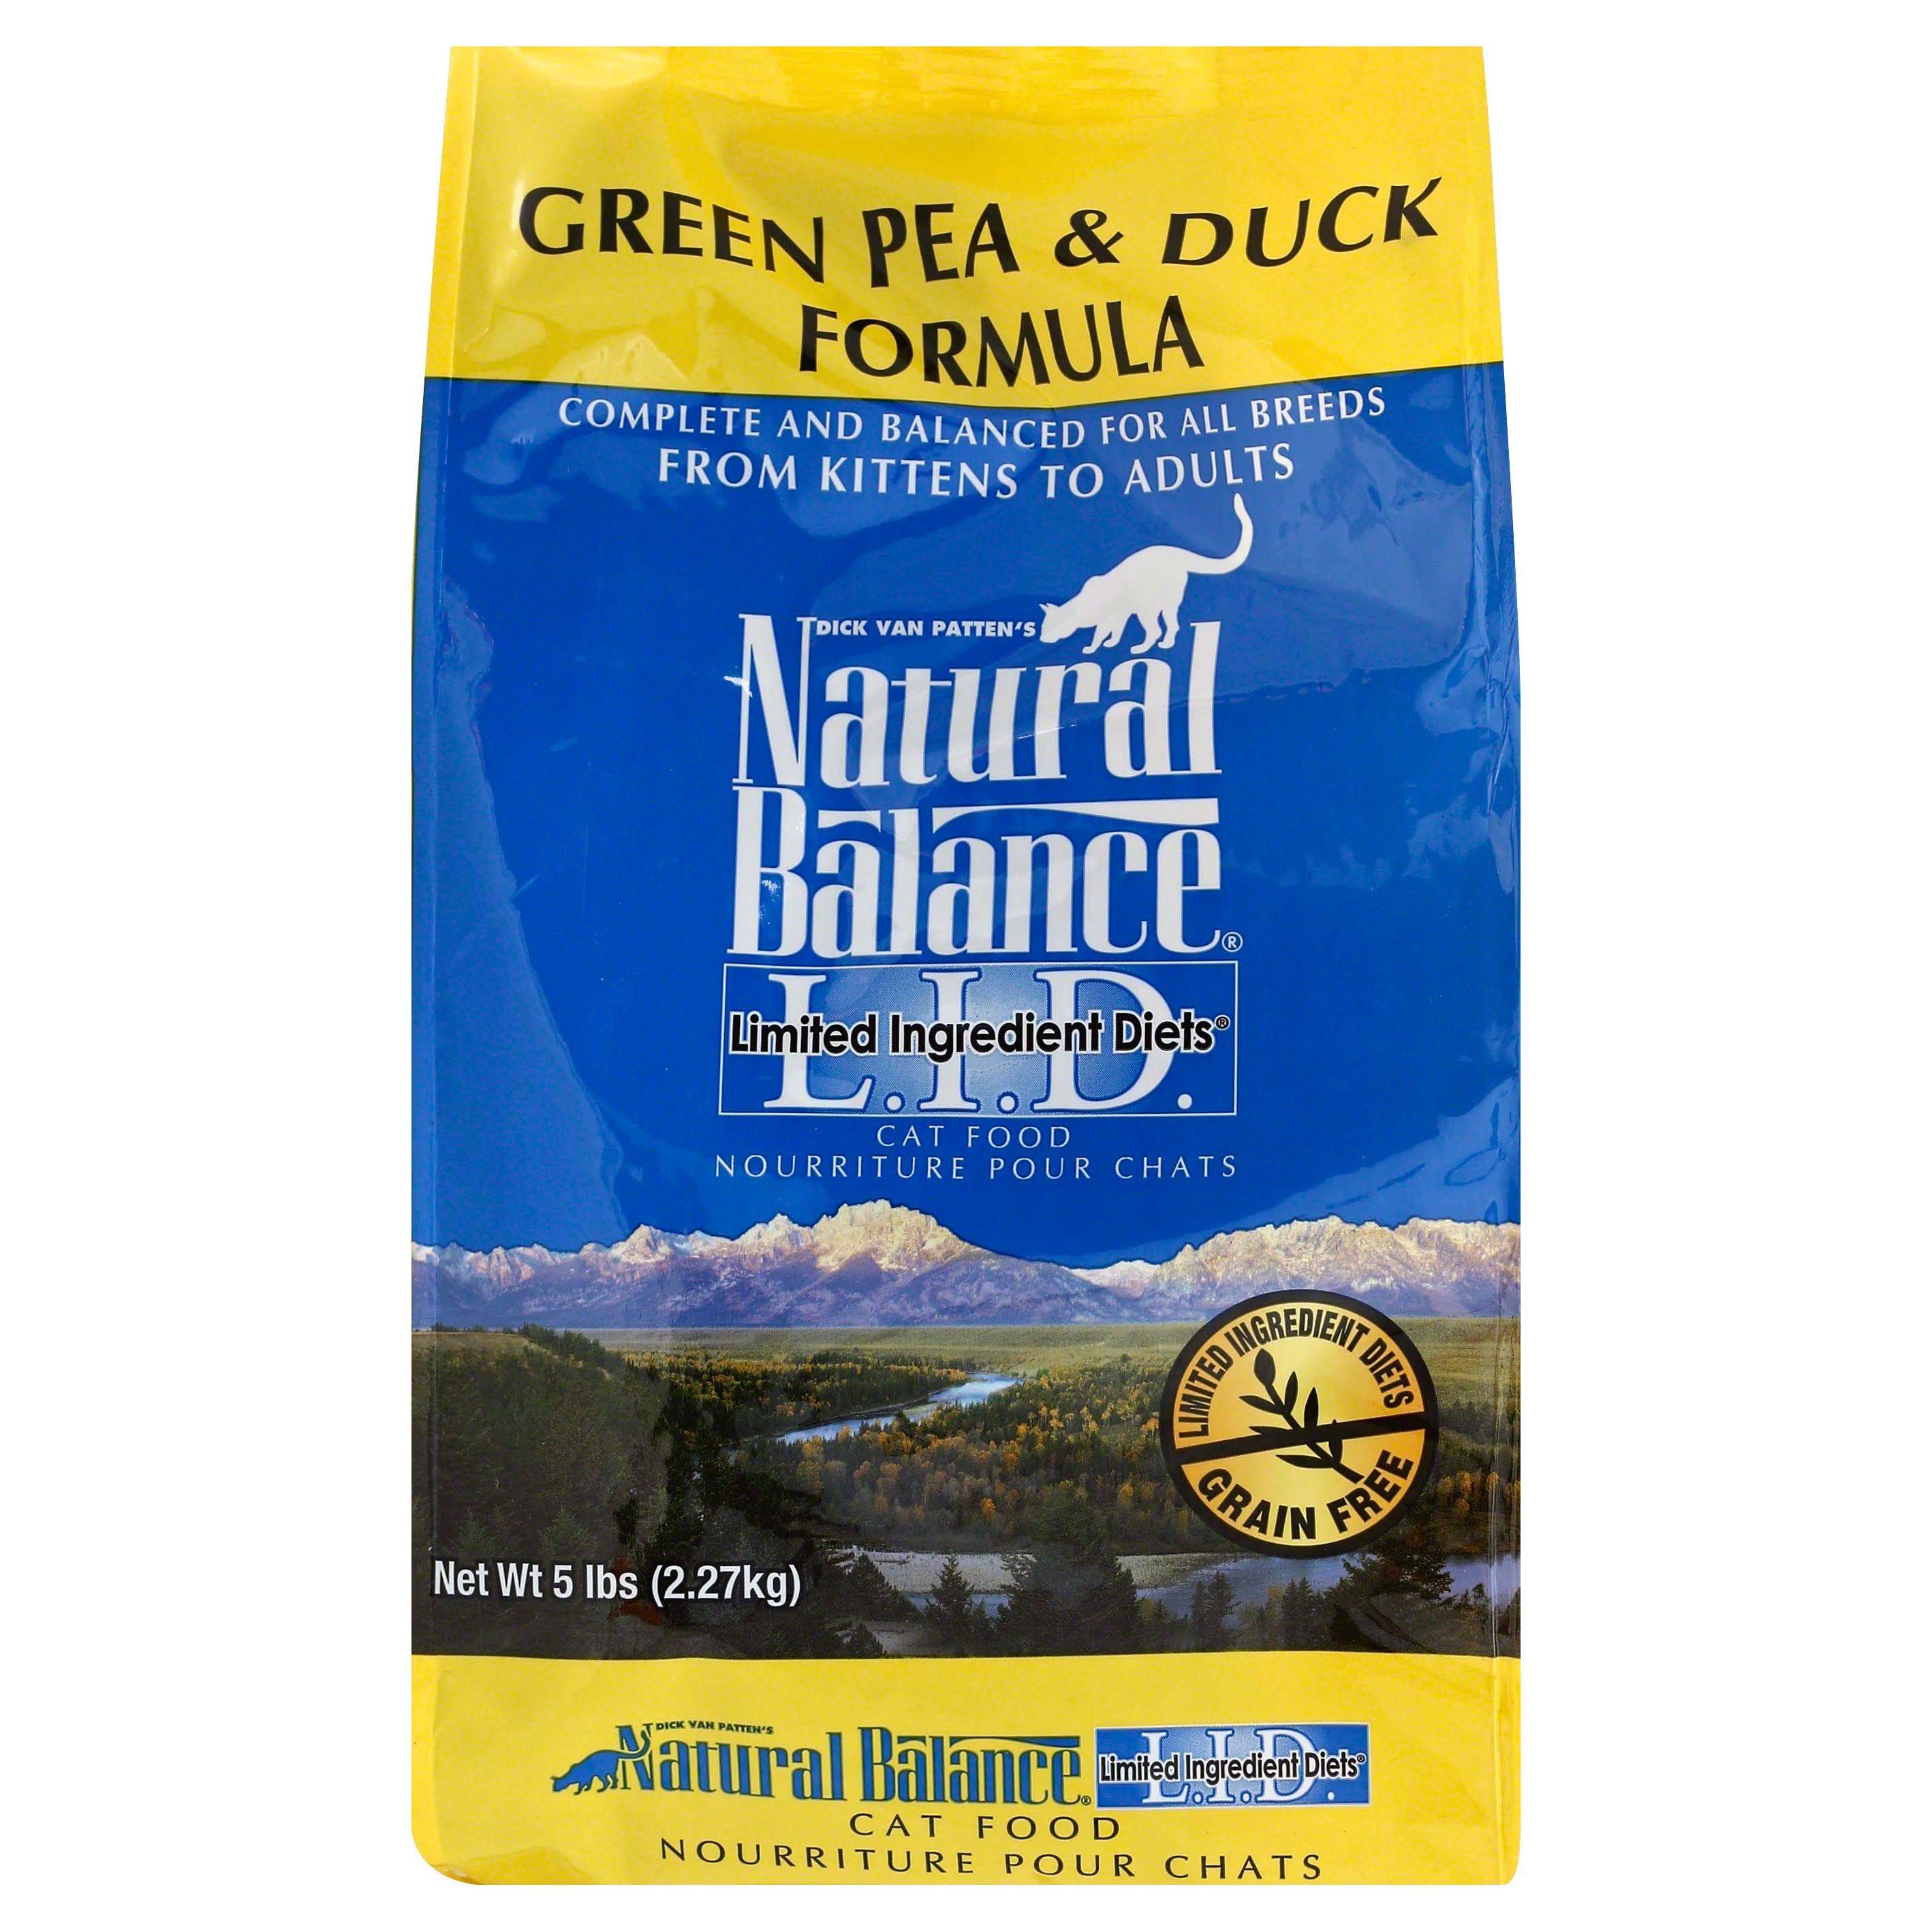 Natural Balance Cat Food - Green Pea and Duck